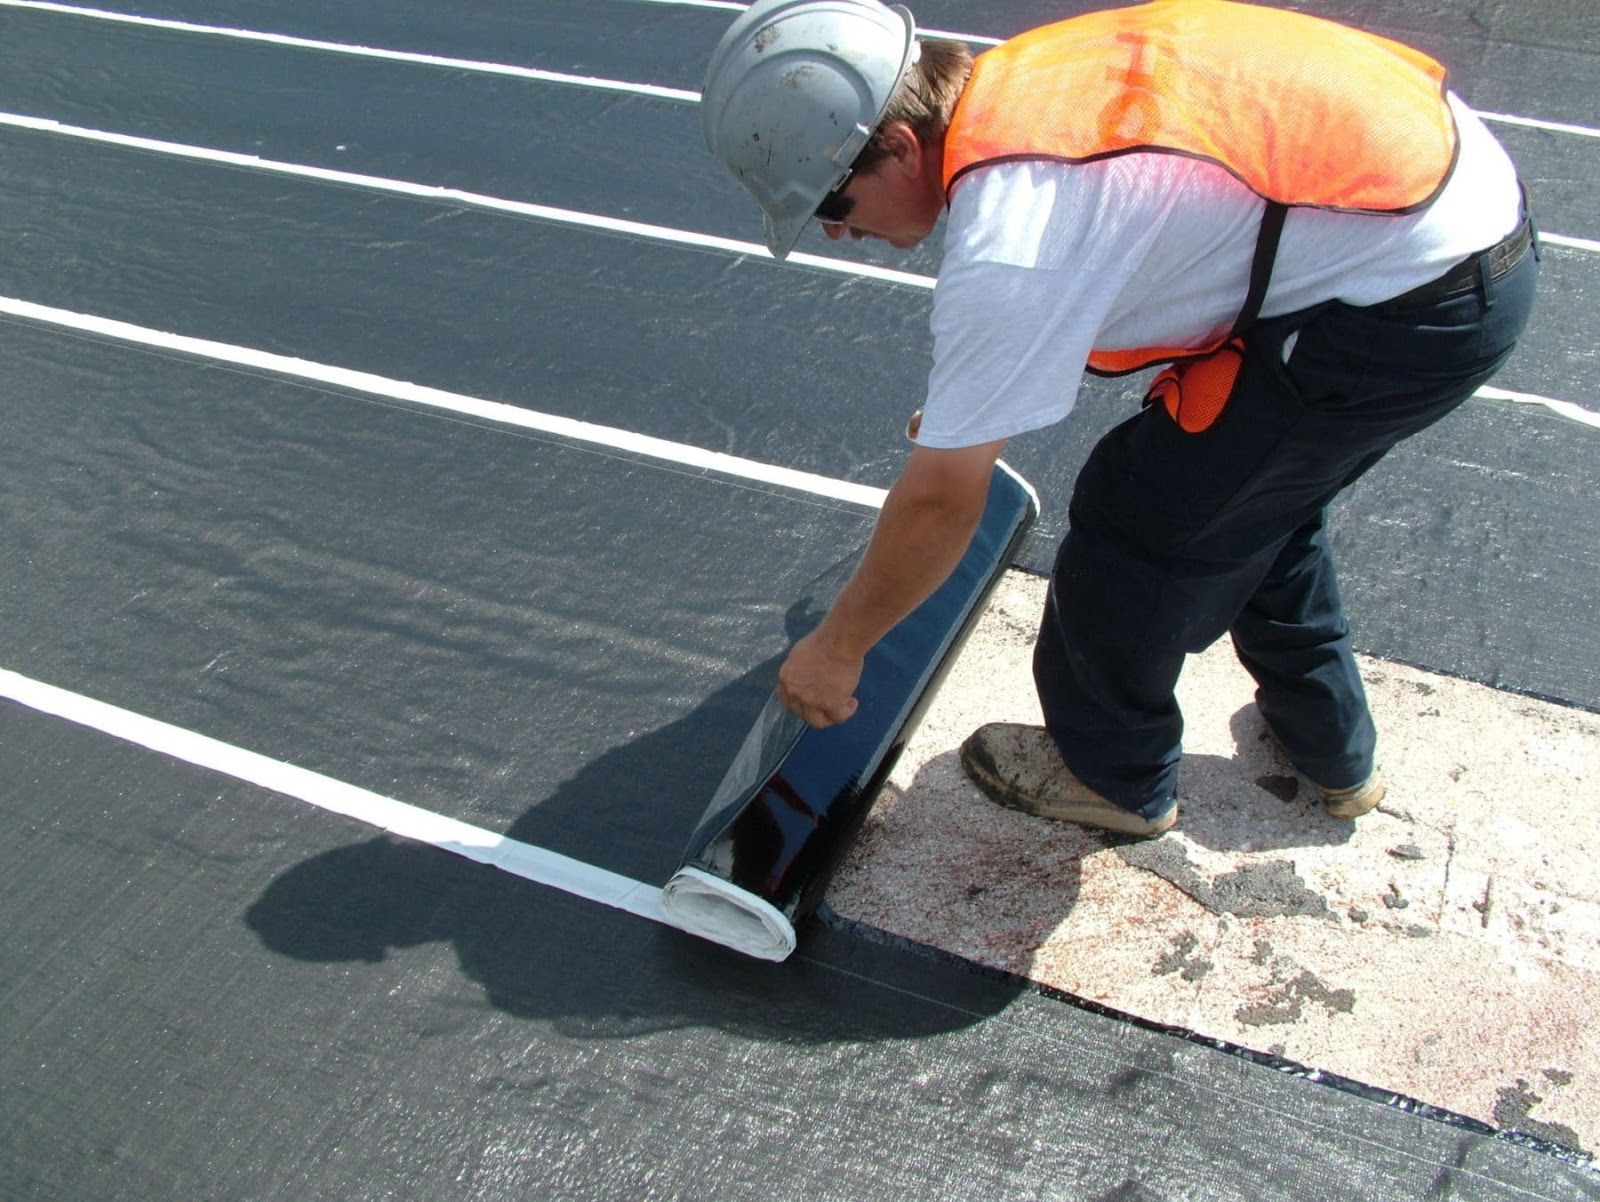 Civil Engineering: Waterproofing methods in construction